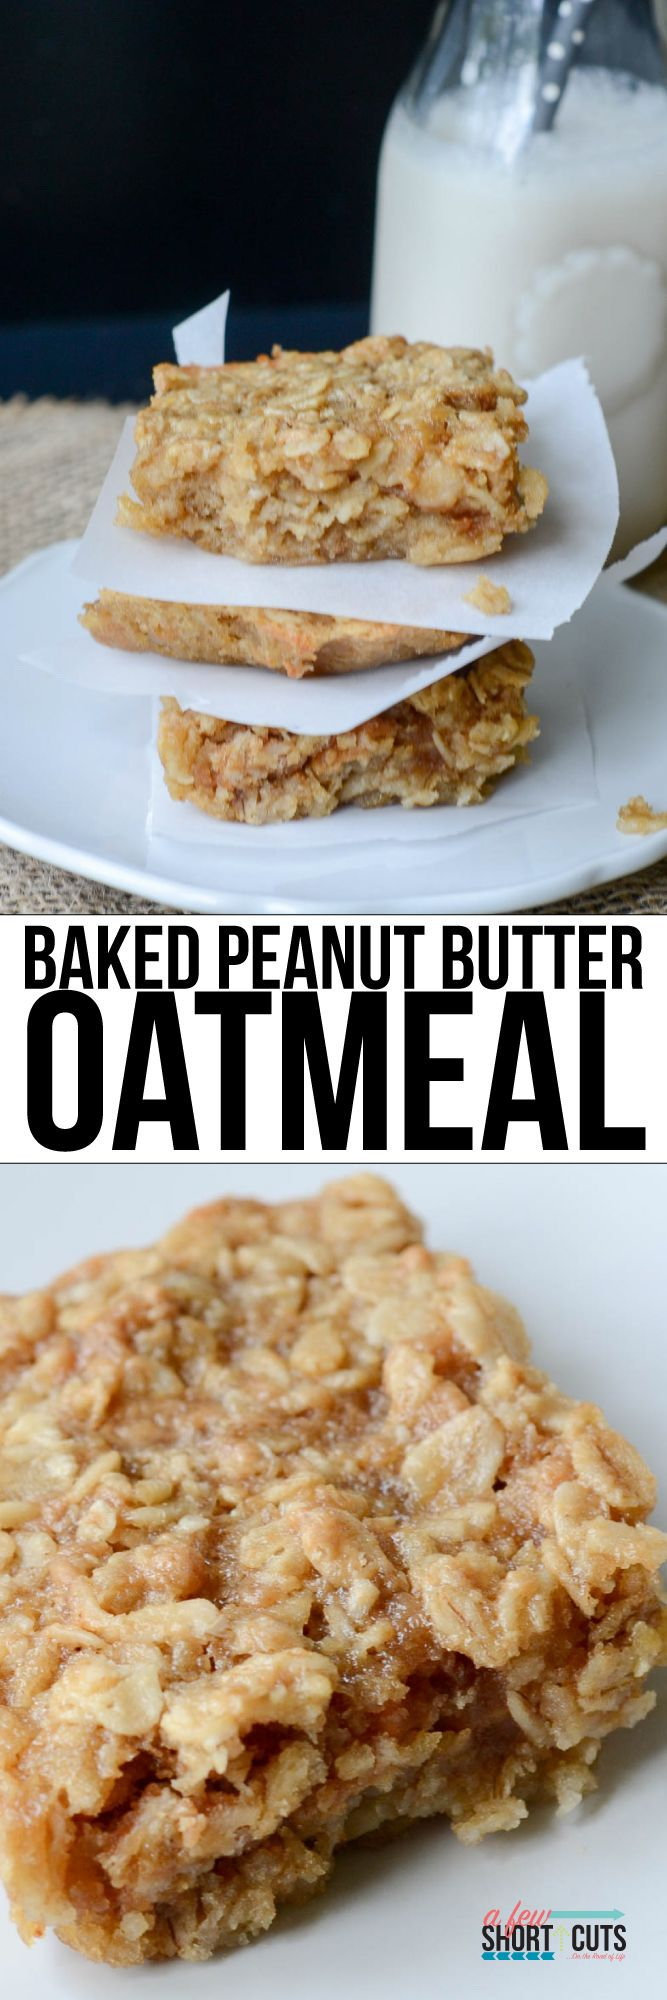 Baked Peanut Butter Oatmeal